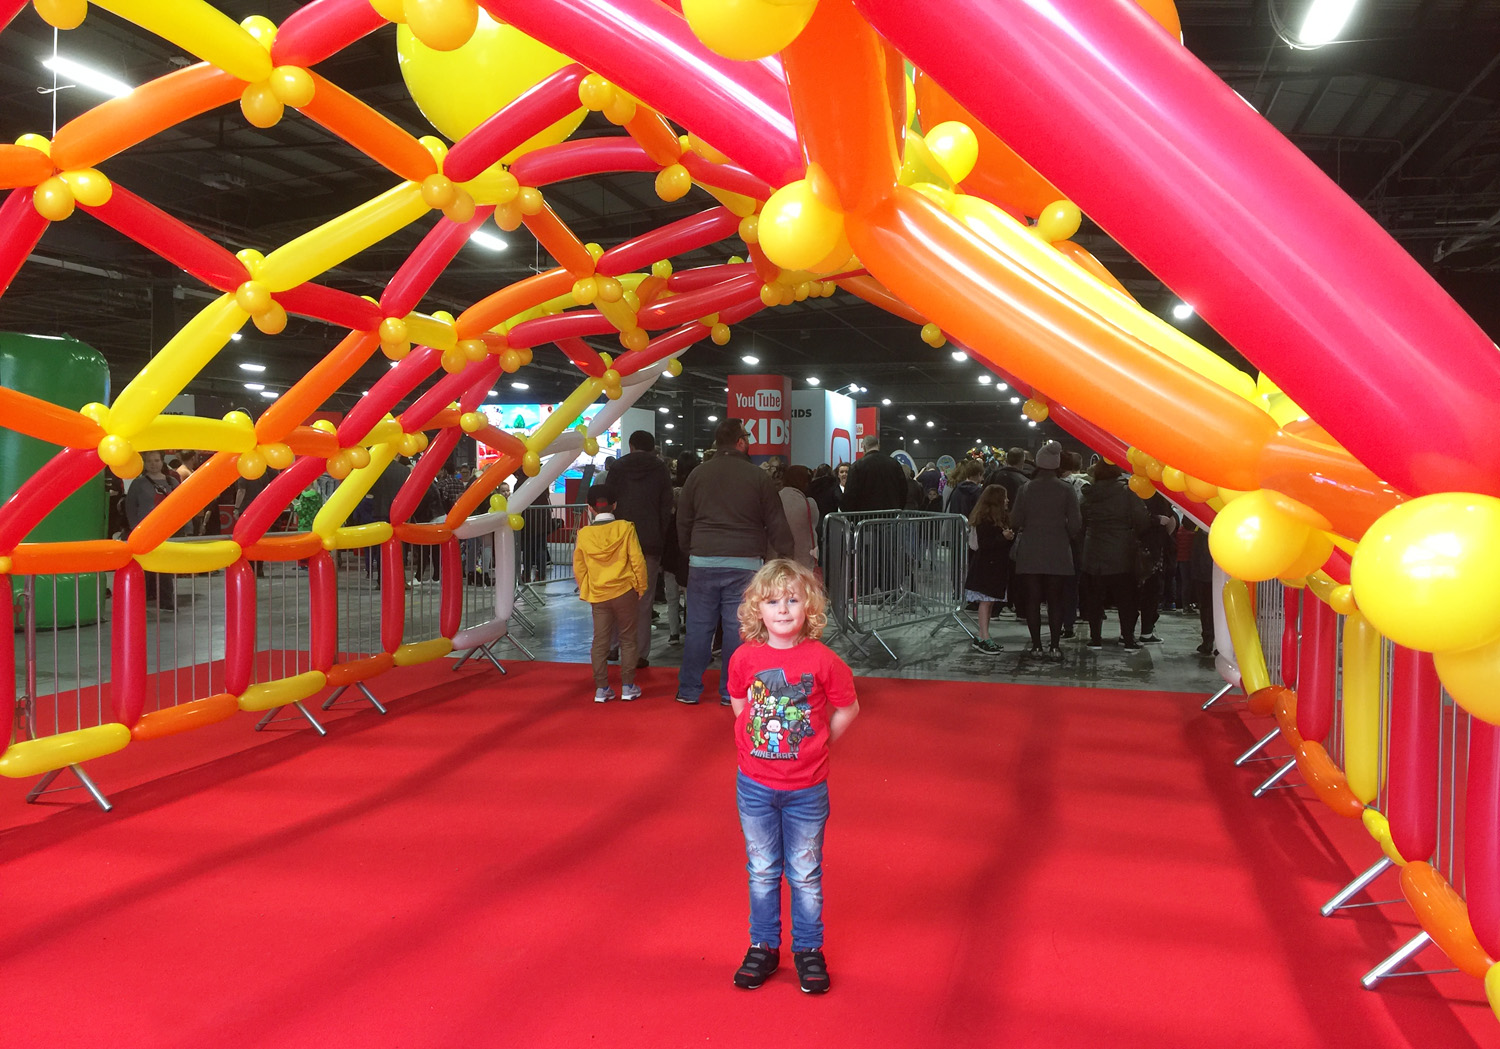 Jacob on the red carpet at the entrance to the Digital Kids Show